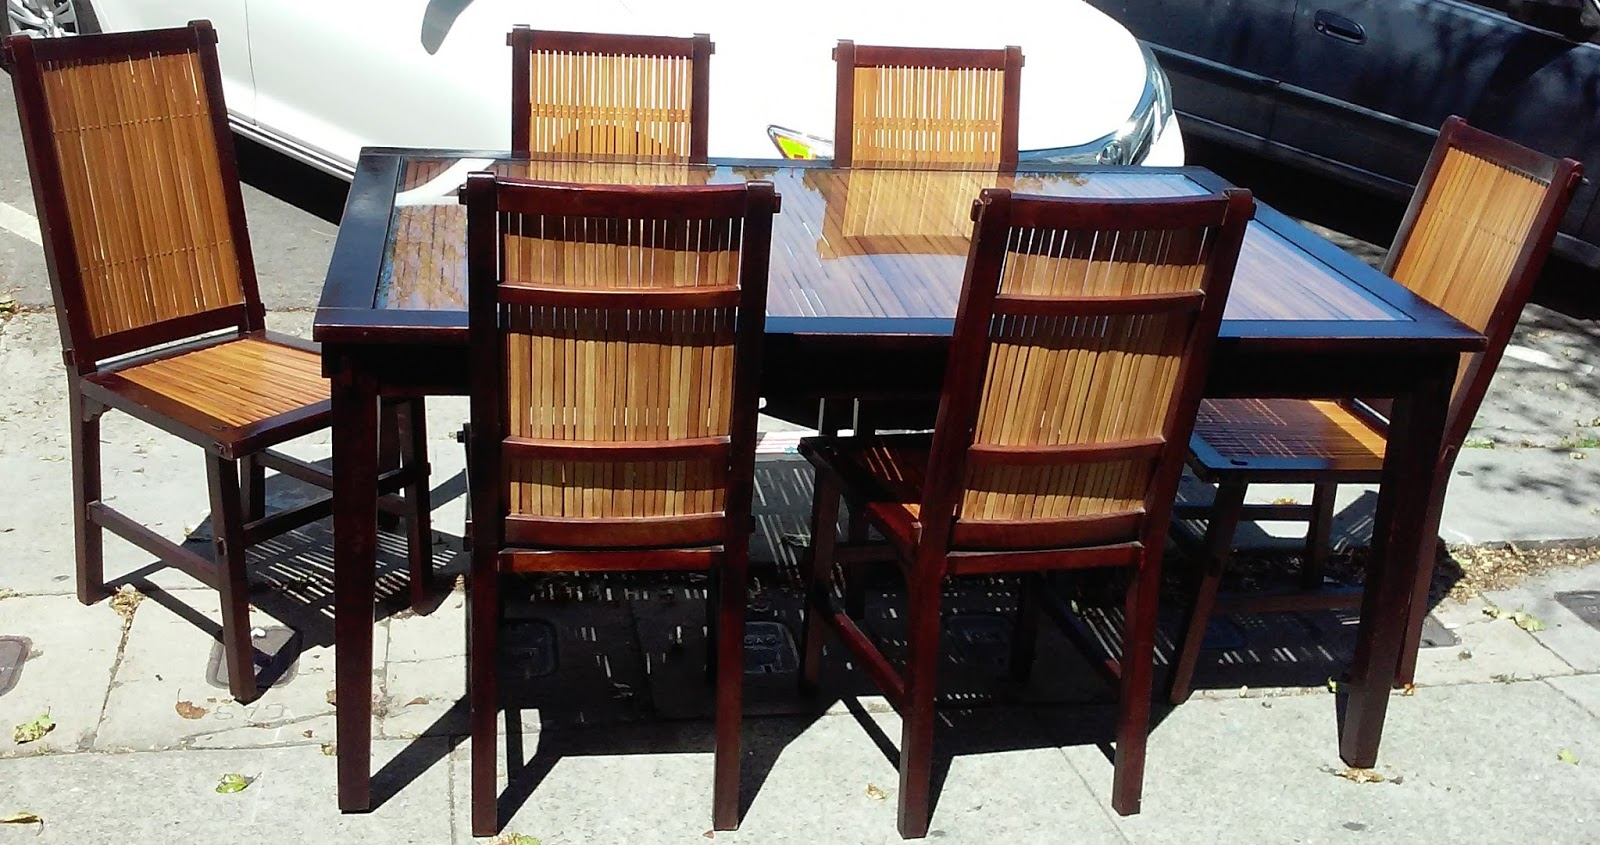 Uhuru Furniture Collectibles Sold Pier 1 Tropical Dining Set 5 1 2 39 X 3 1 2 39 Table 6 Chairs